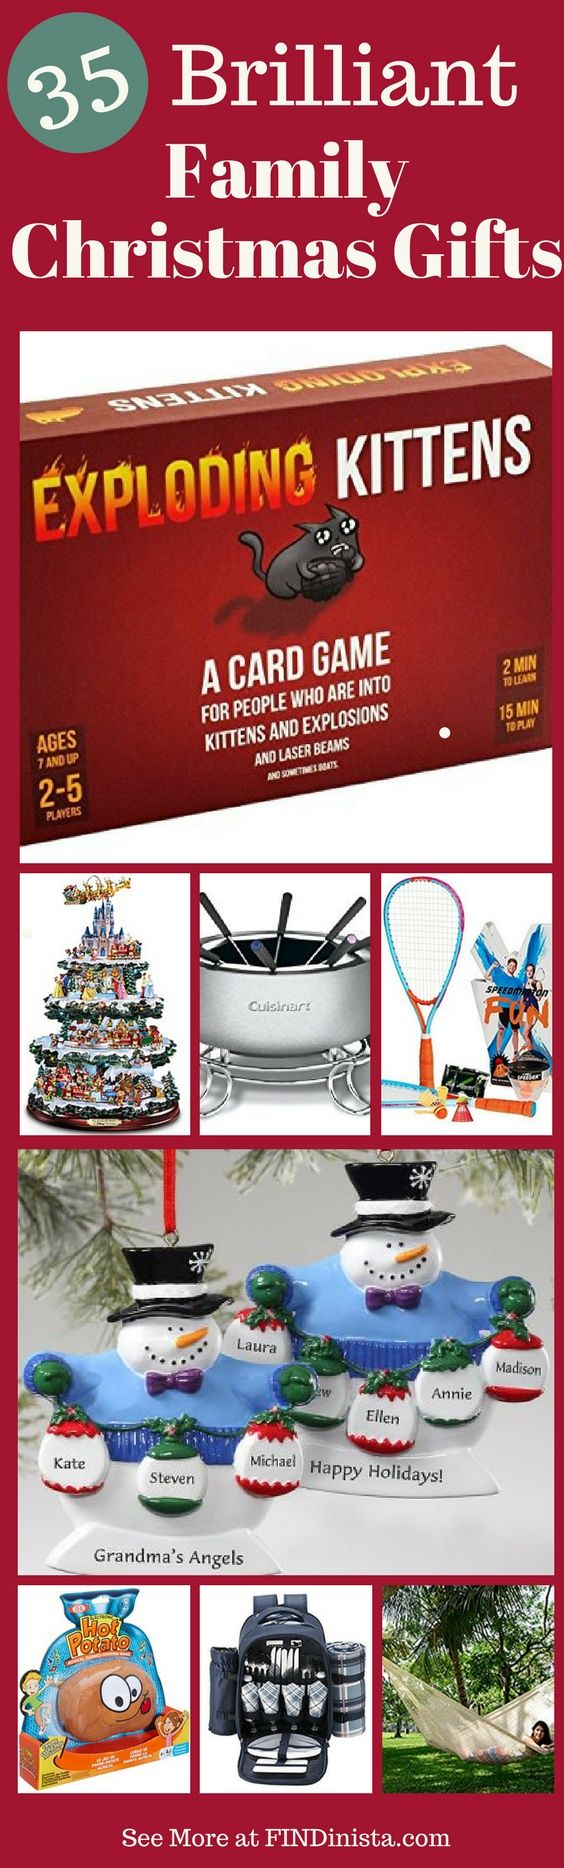 best family gift ideas for christmas fun gifts the whole family will love